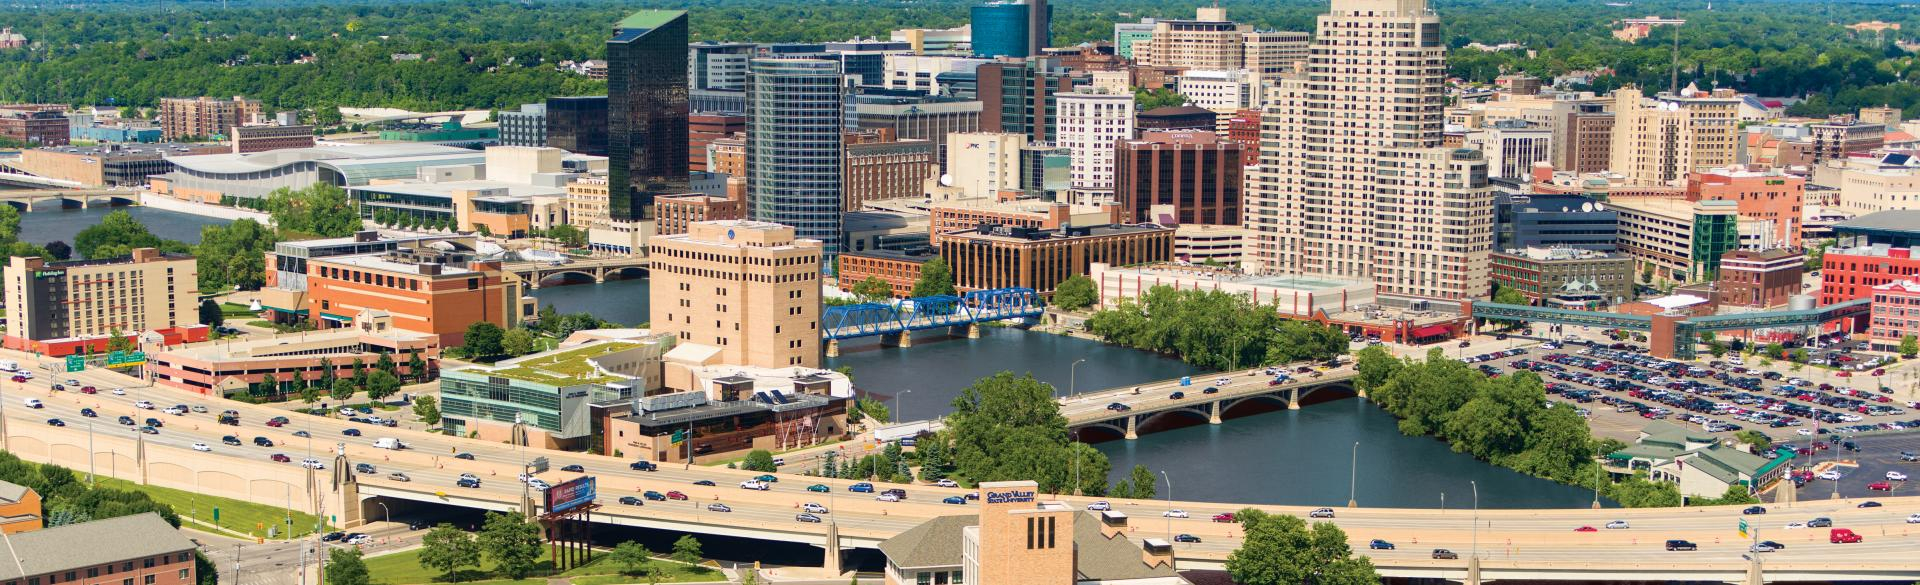 23 Ways To Spend Your 2016 Spring Break In Grand Rapids Inside Spring Break For Grand Rapids Public Schools